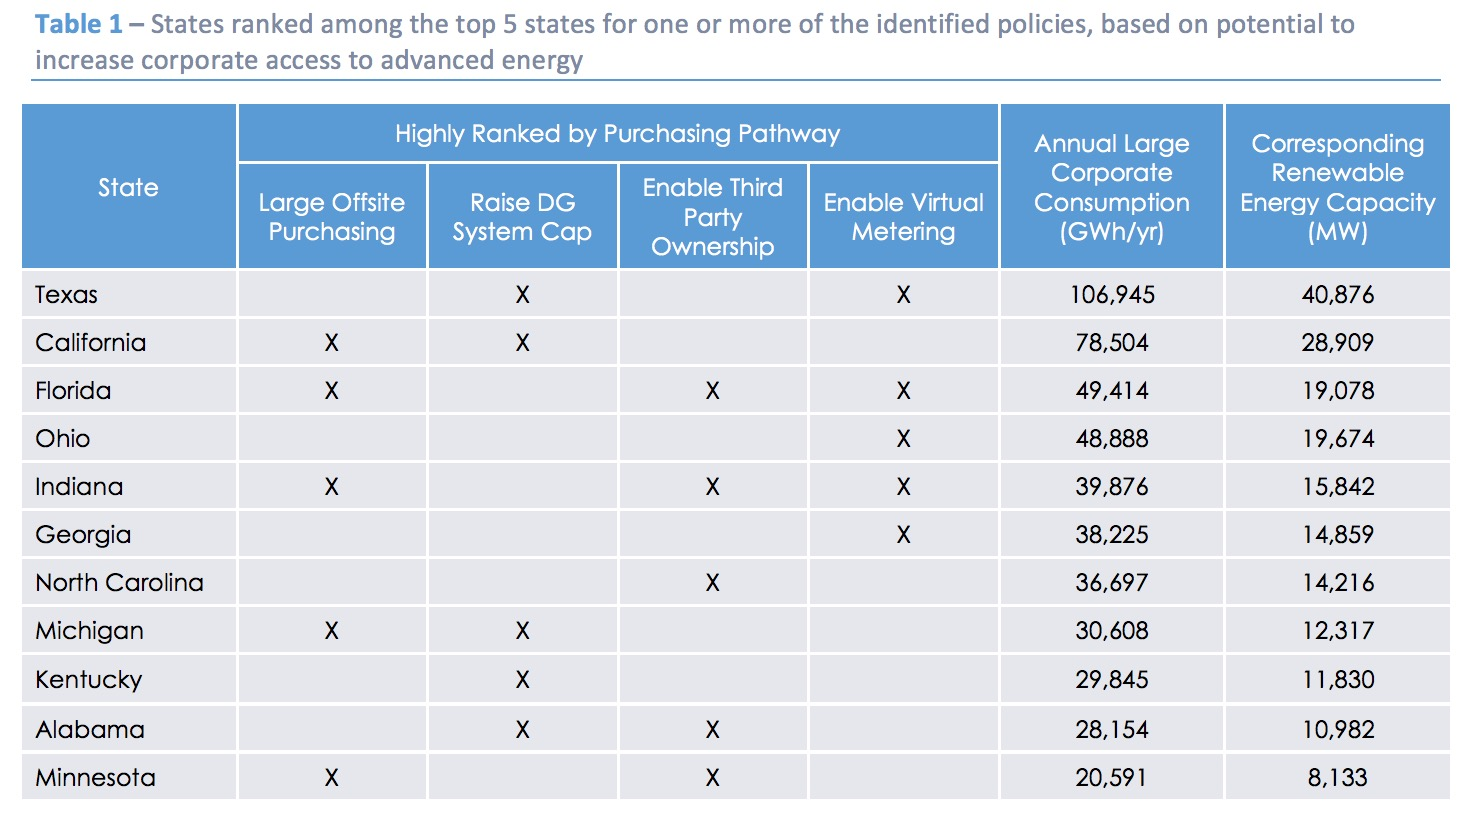 Table 1 – States ranked among the top 5 states for one or more of the identified policies, based on potential to increase corporate access to advanced energy